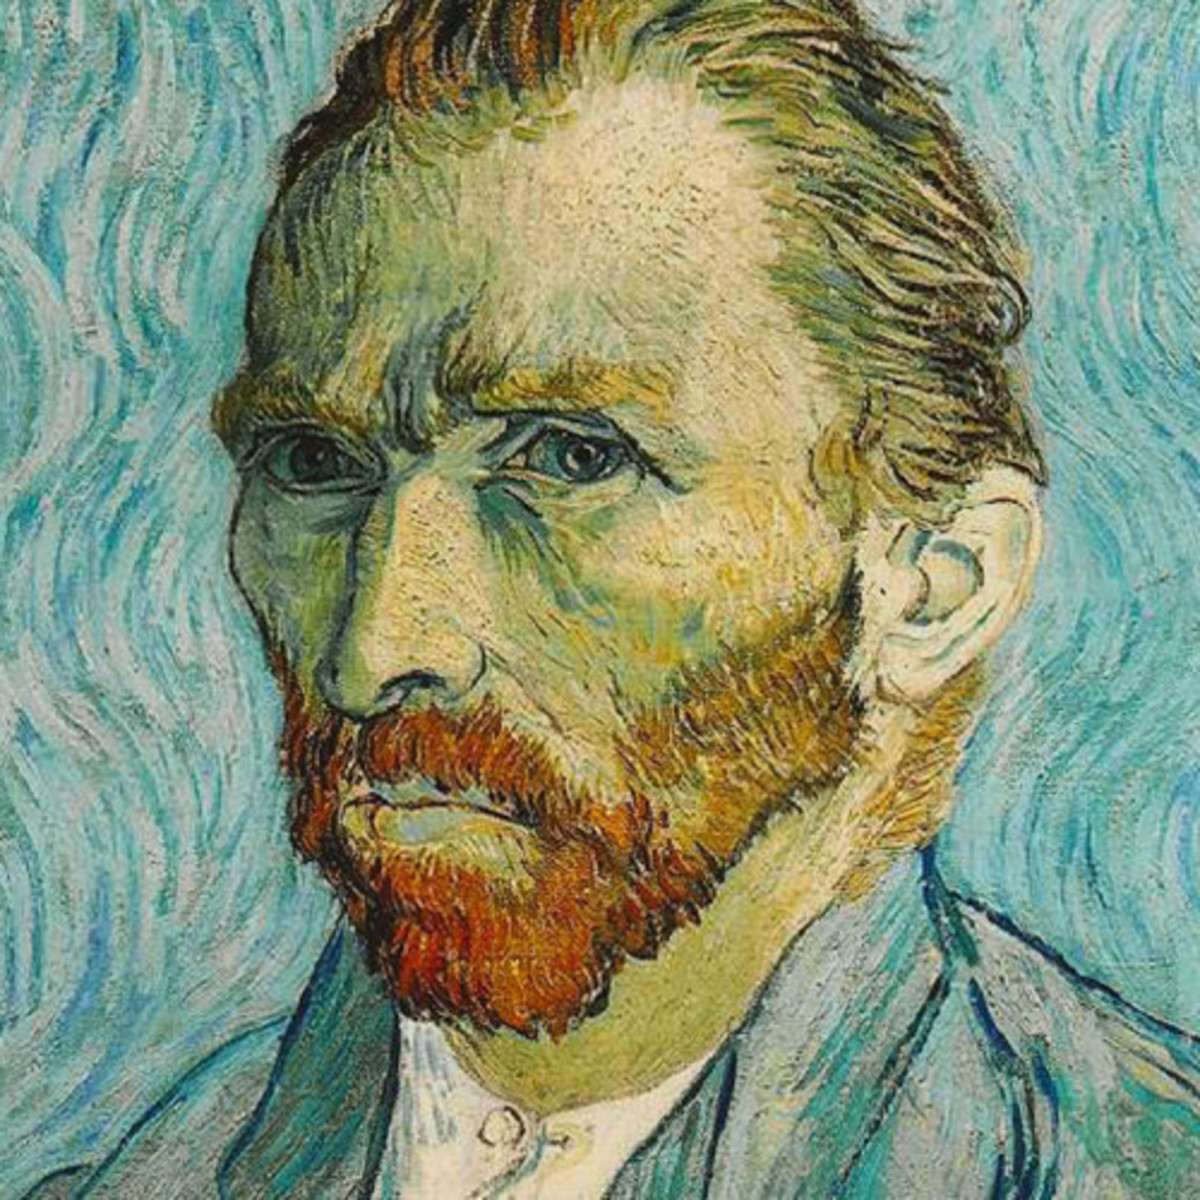 Angry Painter 2016 vincent van gogh - paintings, quotes & death - biography